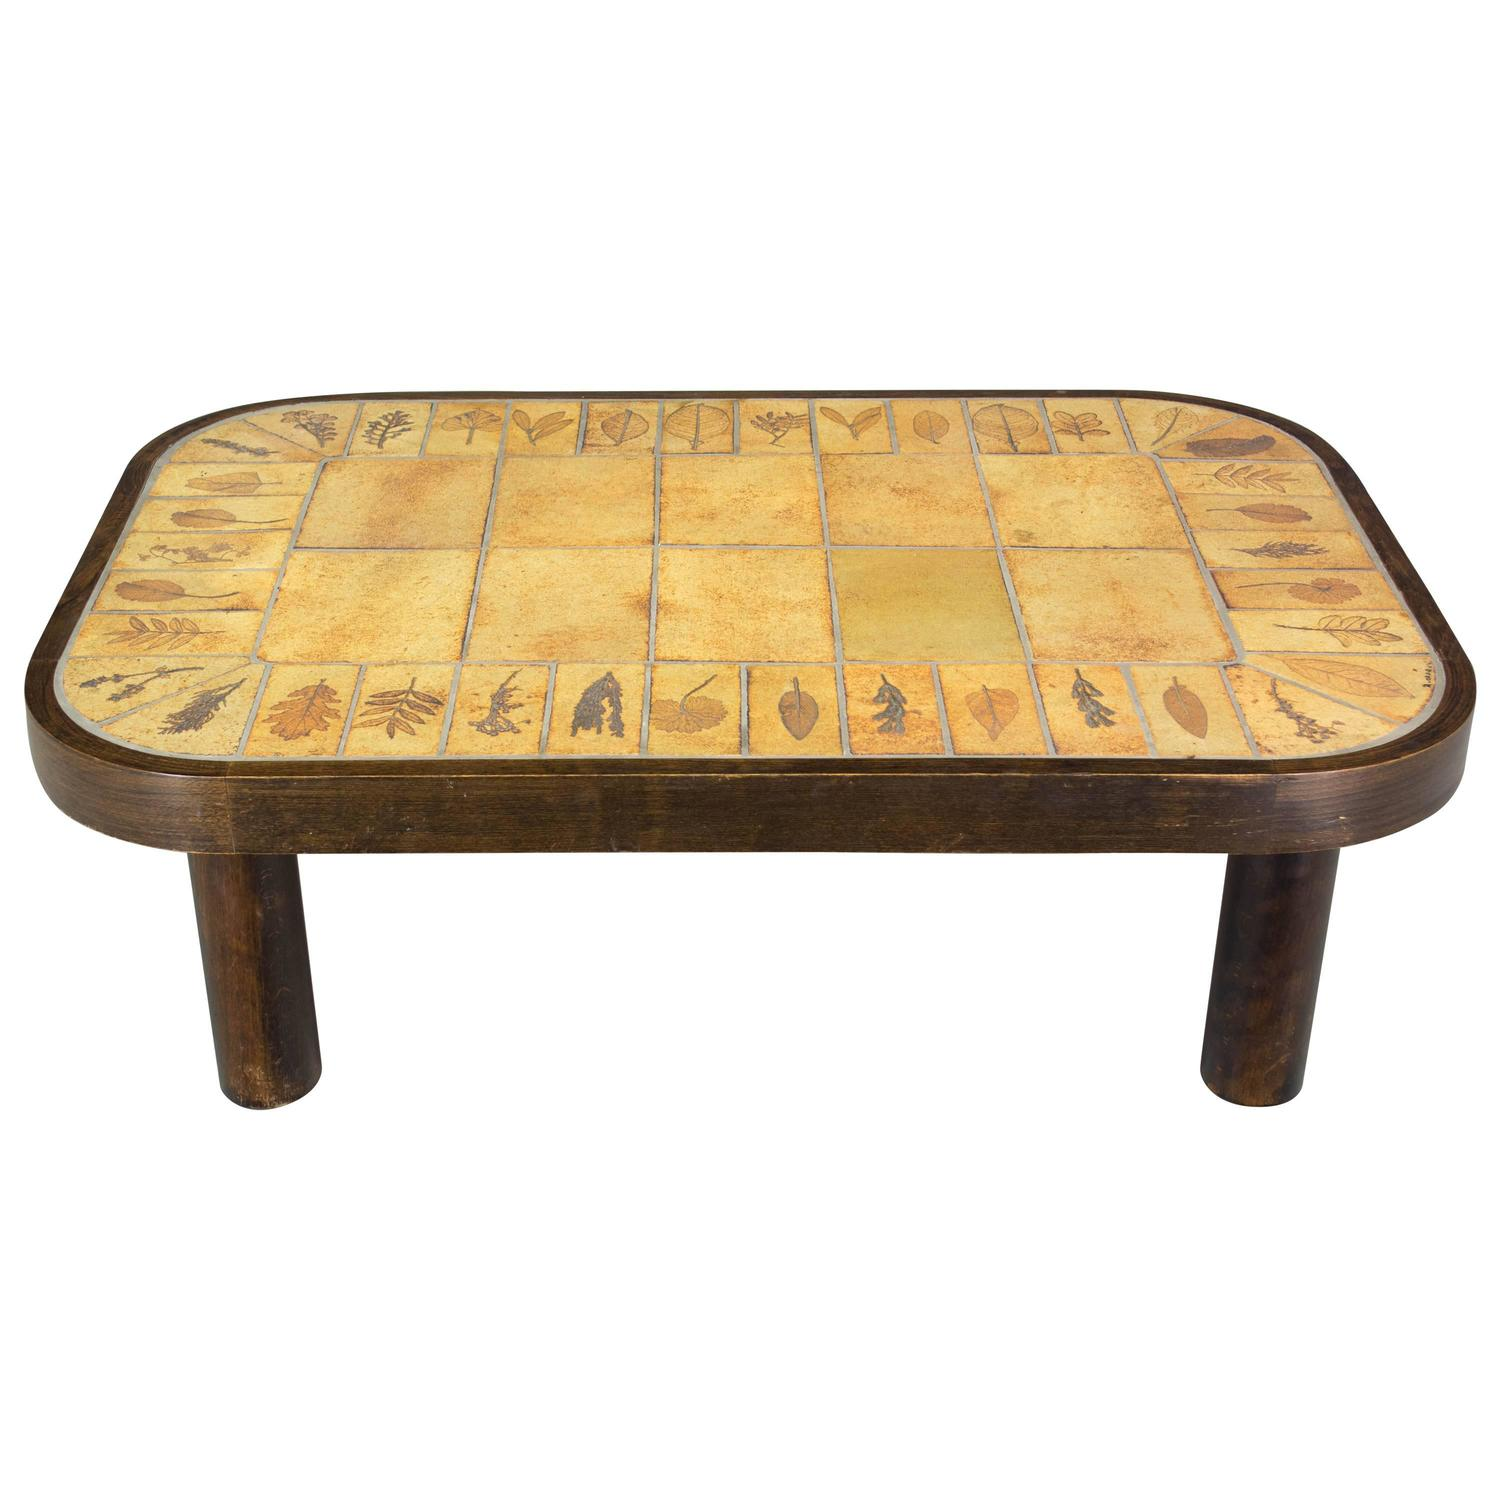 Tile Coffee Table Set: Roger Capron Ceramic Tile Top Coffee Table For Sale At 1stdibs